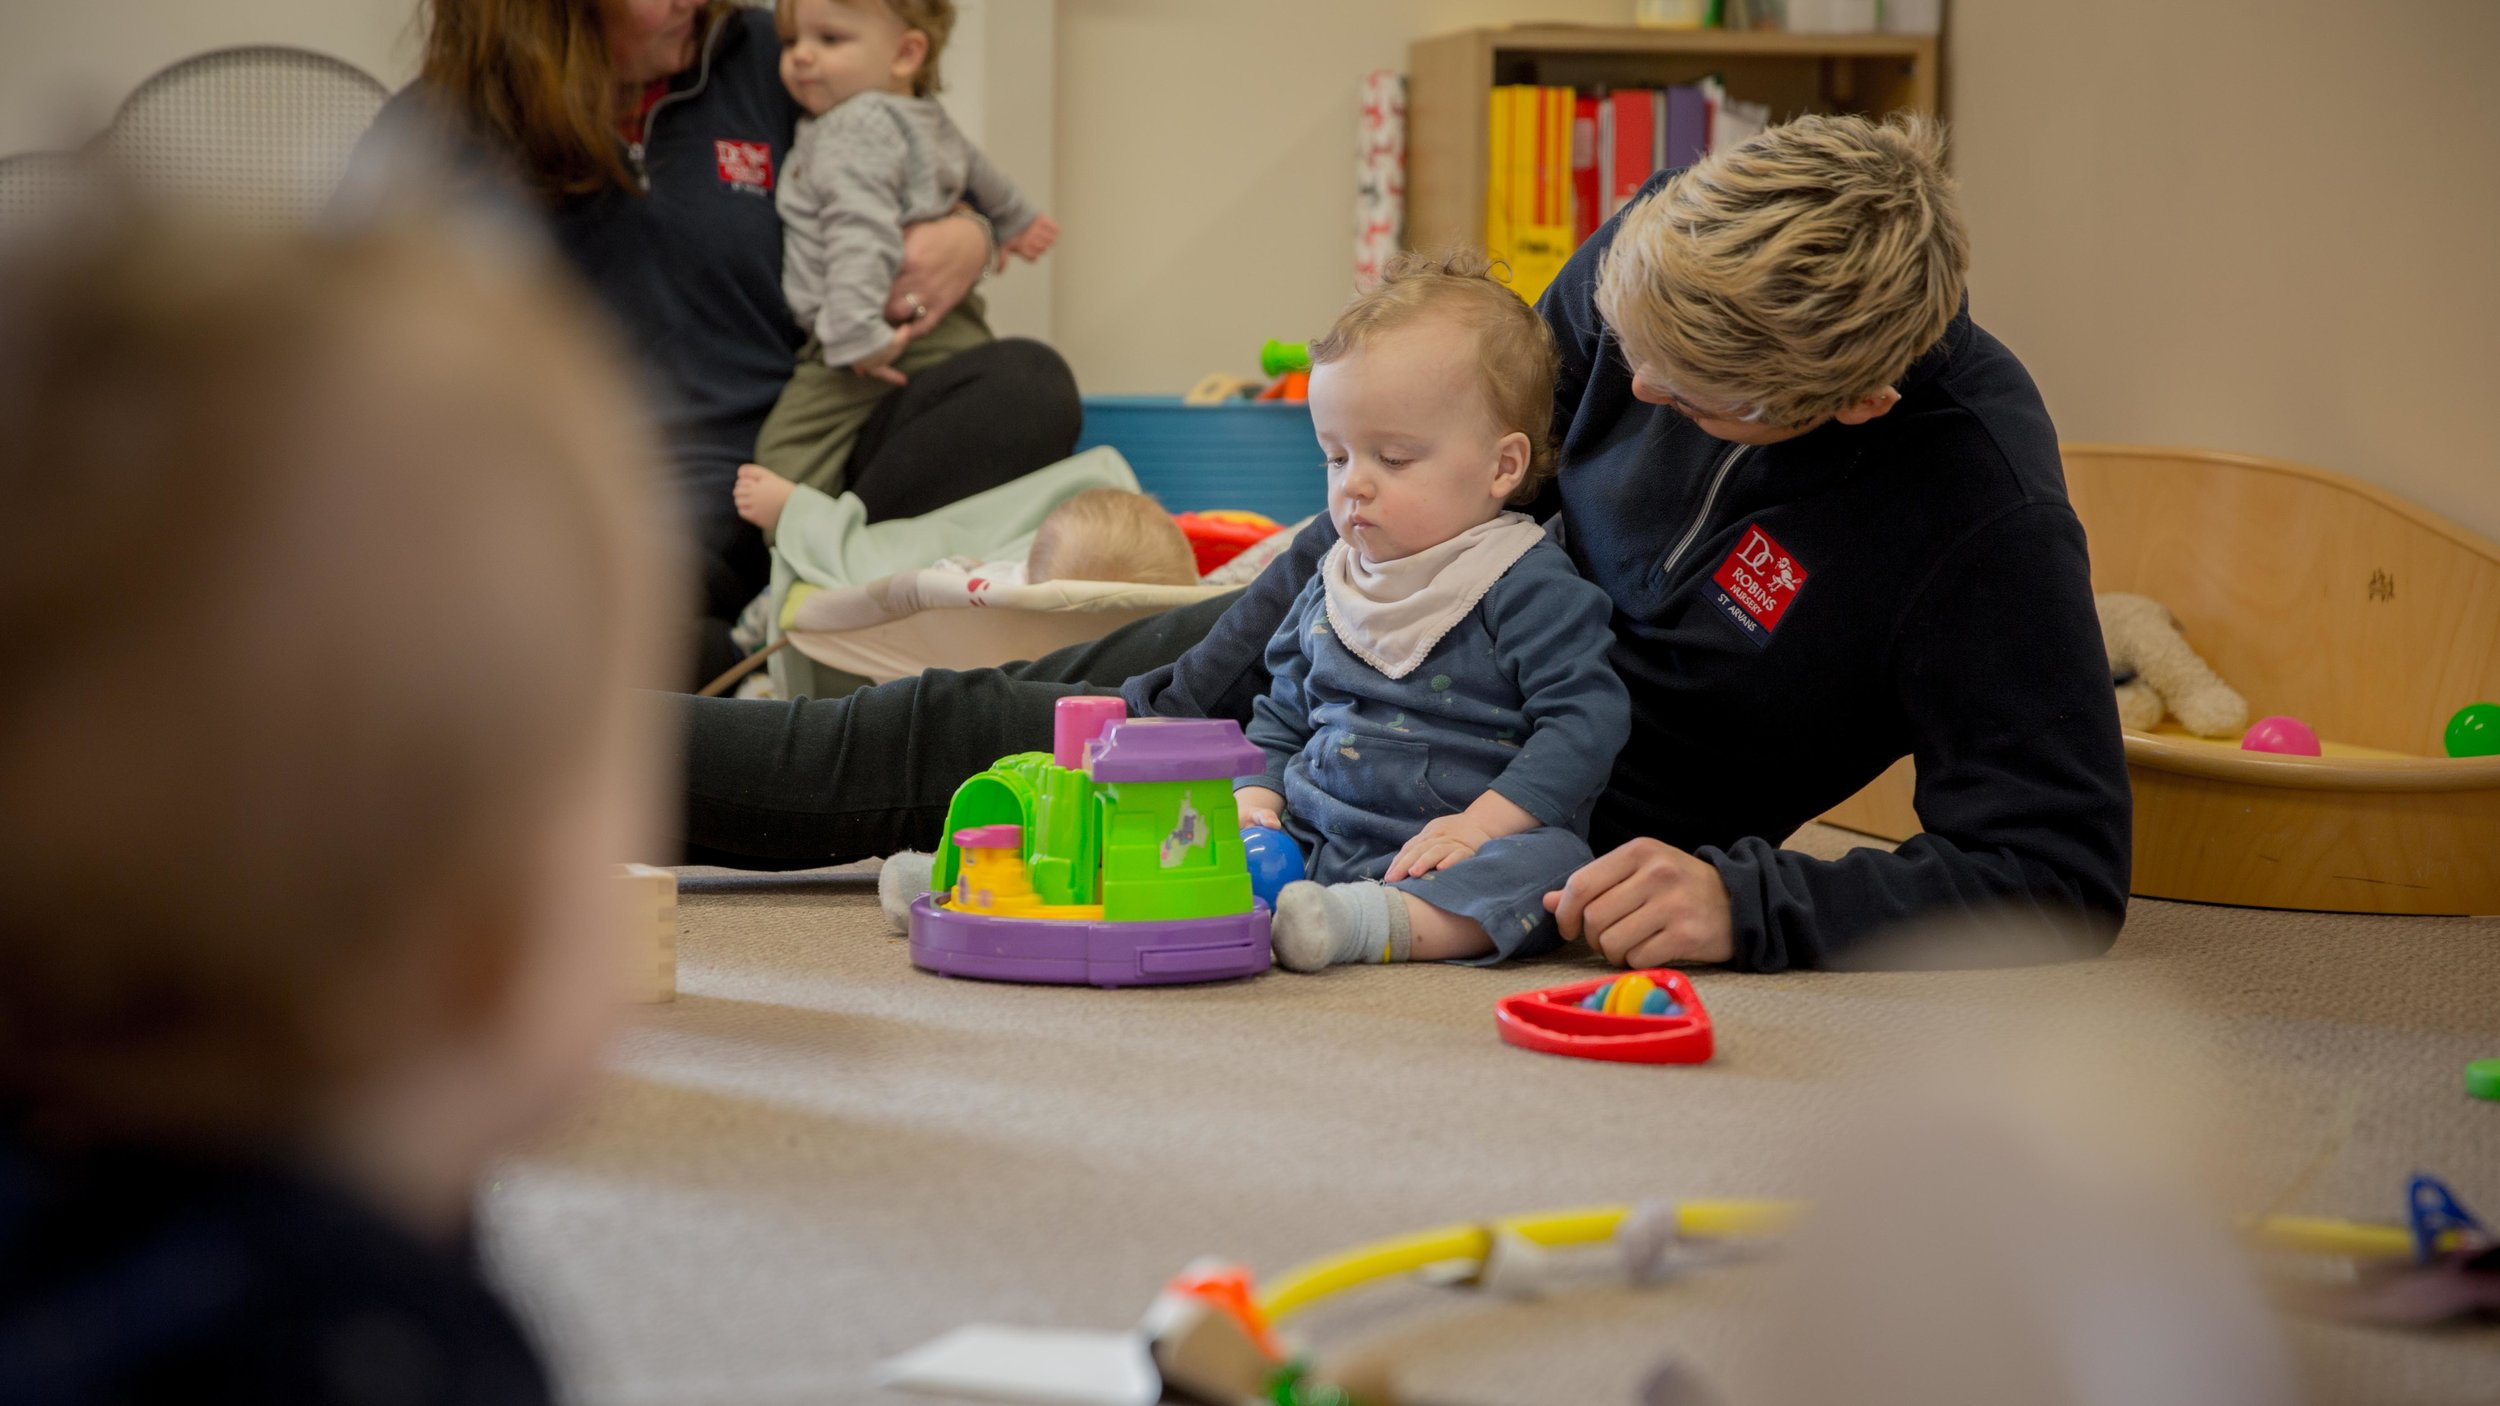 3-Commercial-nursery-school-photographer-chepstow-south-wales-natalia-smith-photography-13.jpg